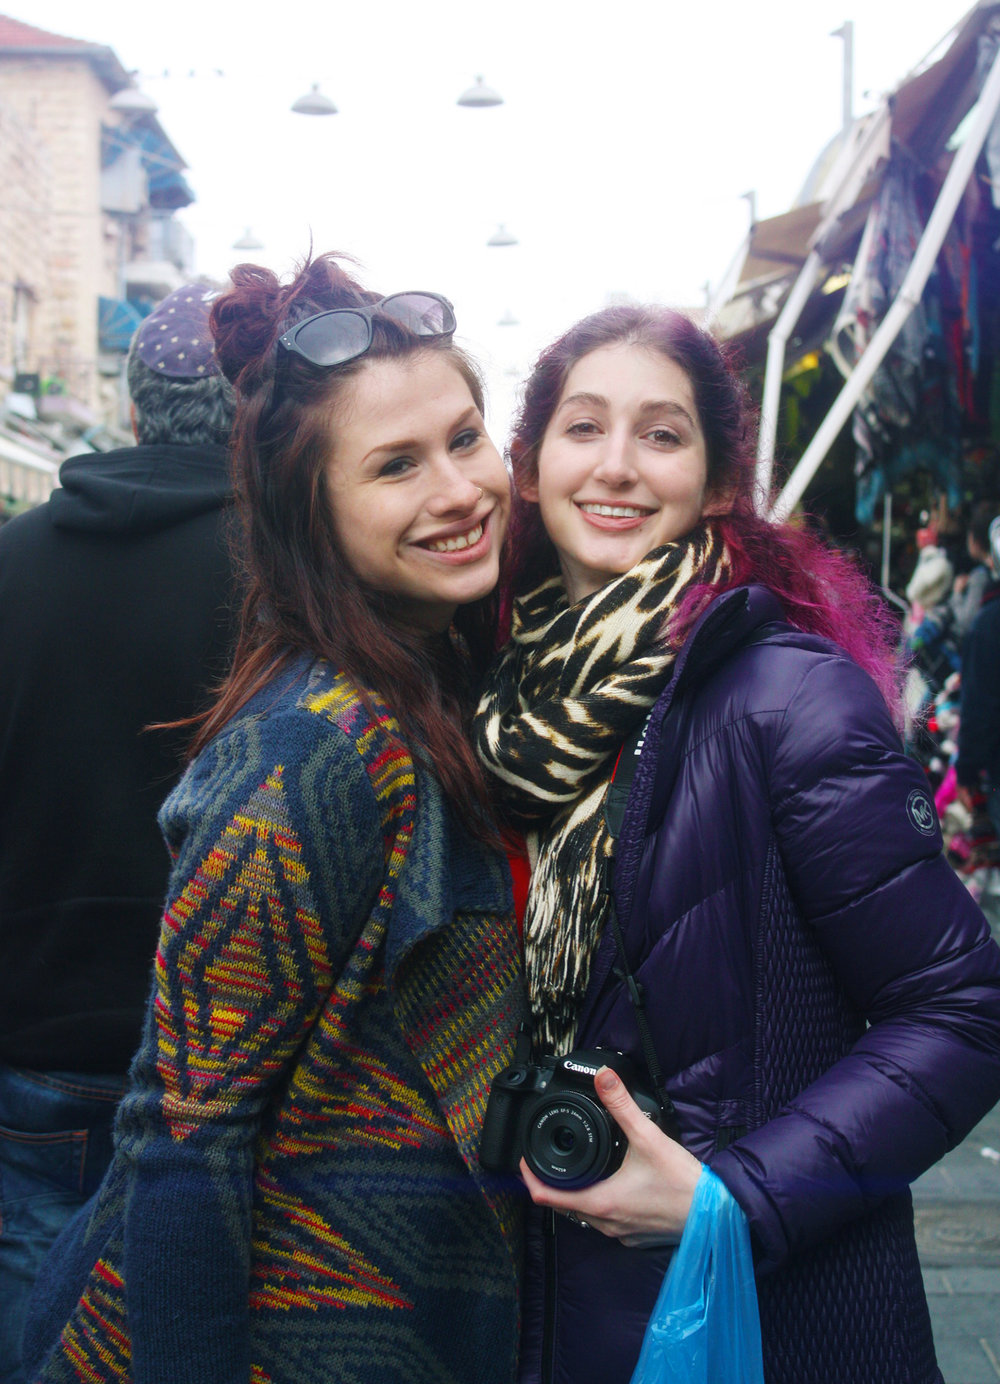 Jessica Gallagher Steuver and Geena Matuson in Jerusalem's Shuk Machane Yehuda, December 2016.